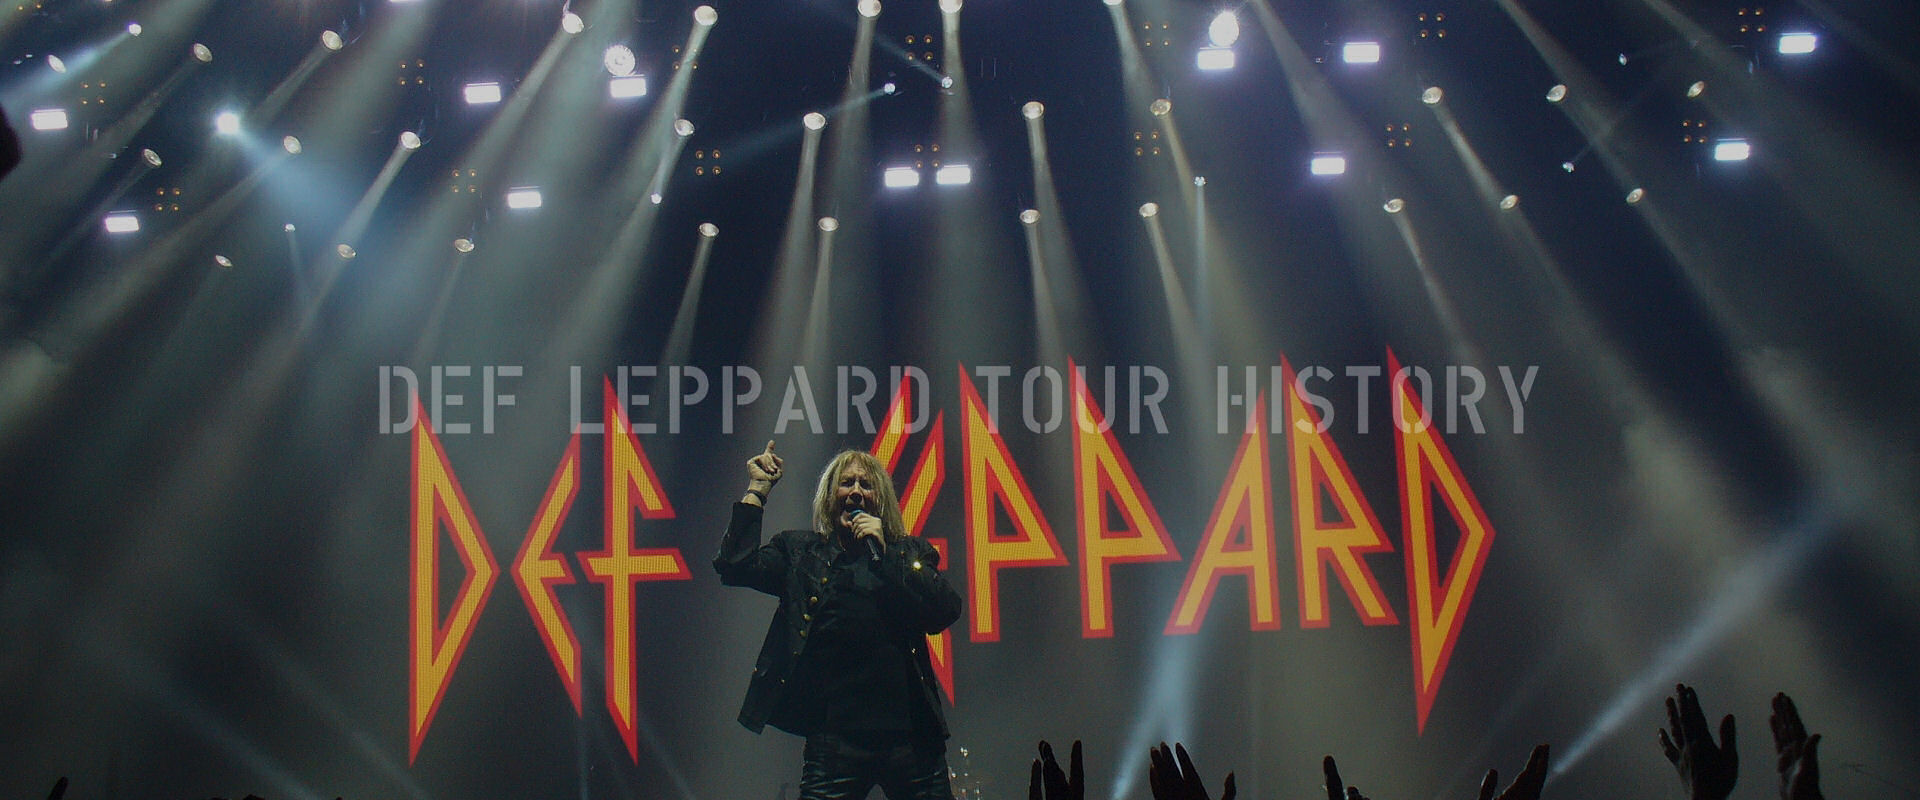 def leppard run riot mp3 download